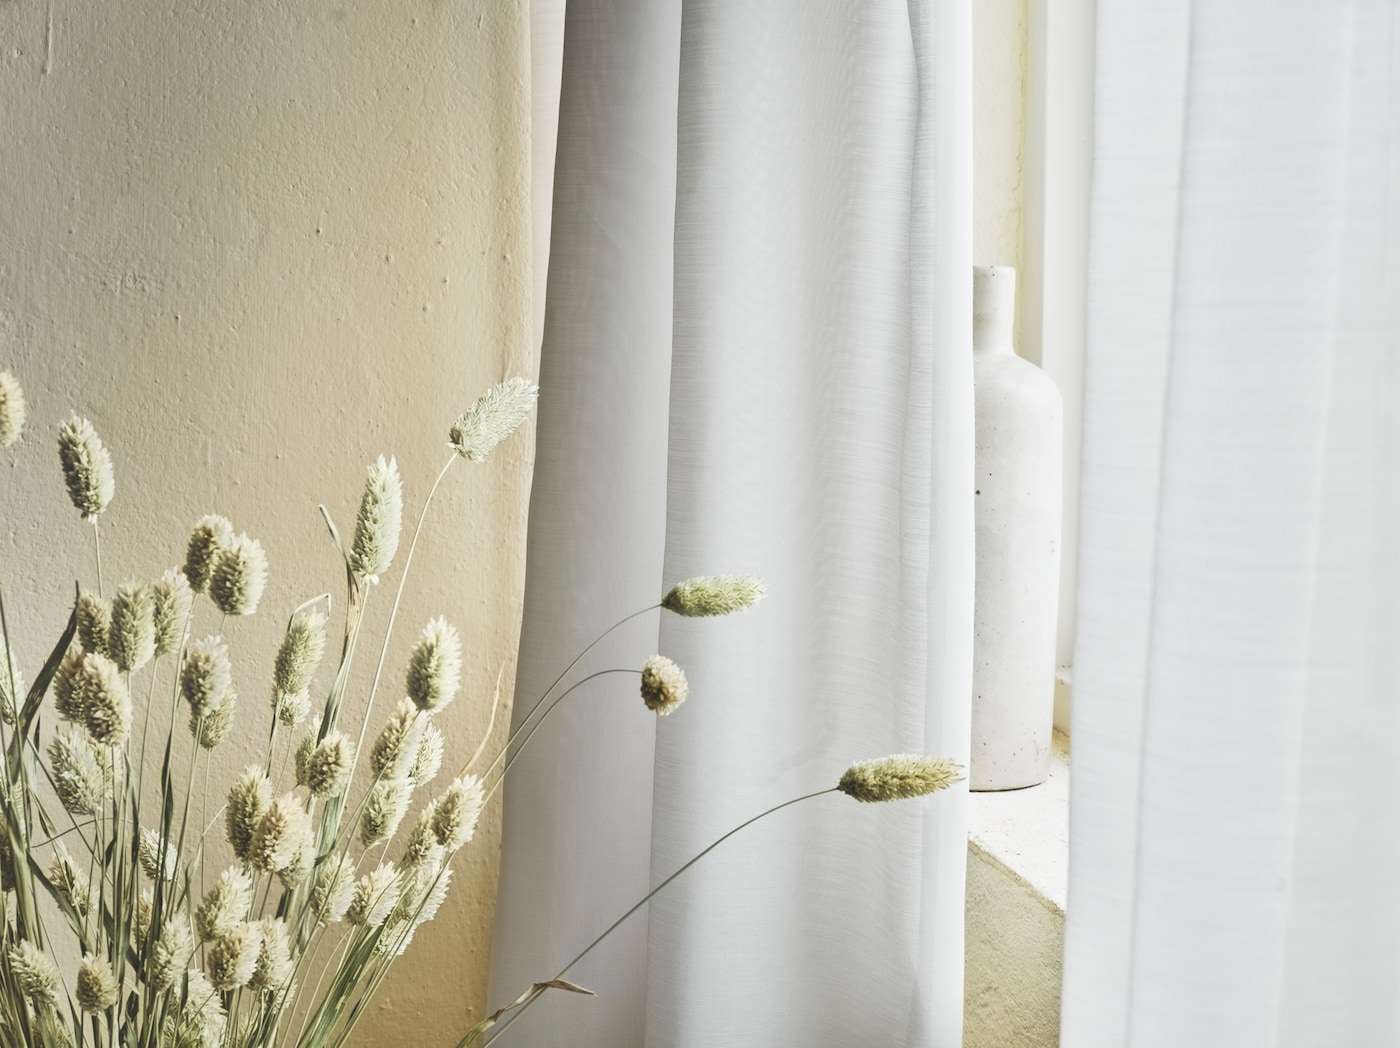 A close-up of the white GUNRID air purifying curtains hanging by a window next to dried wheat stalks.